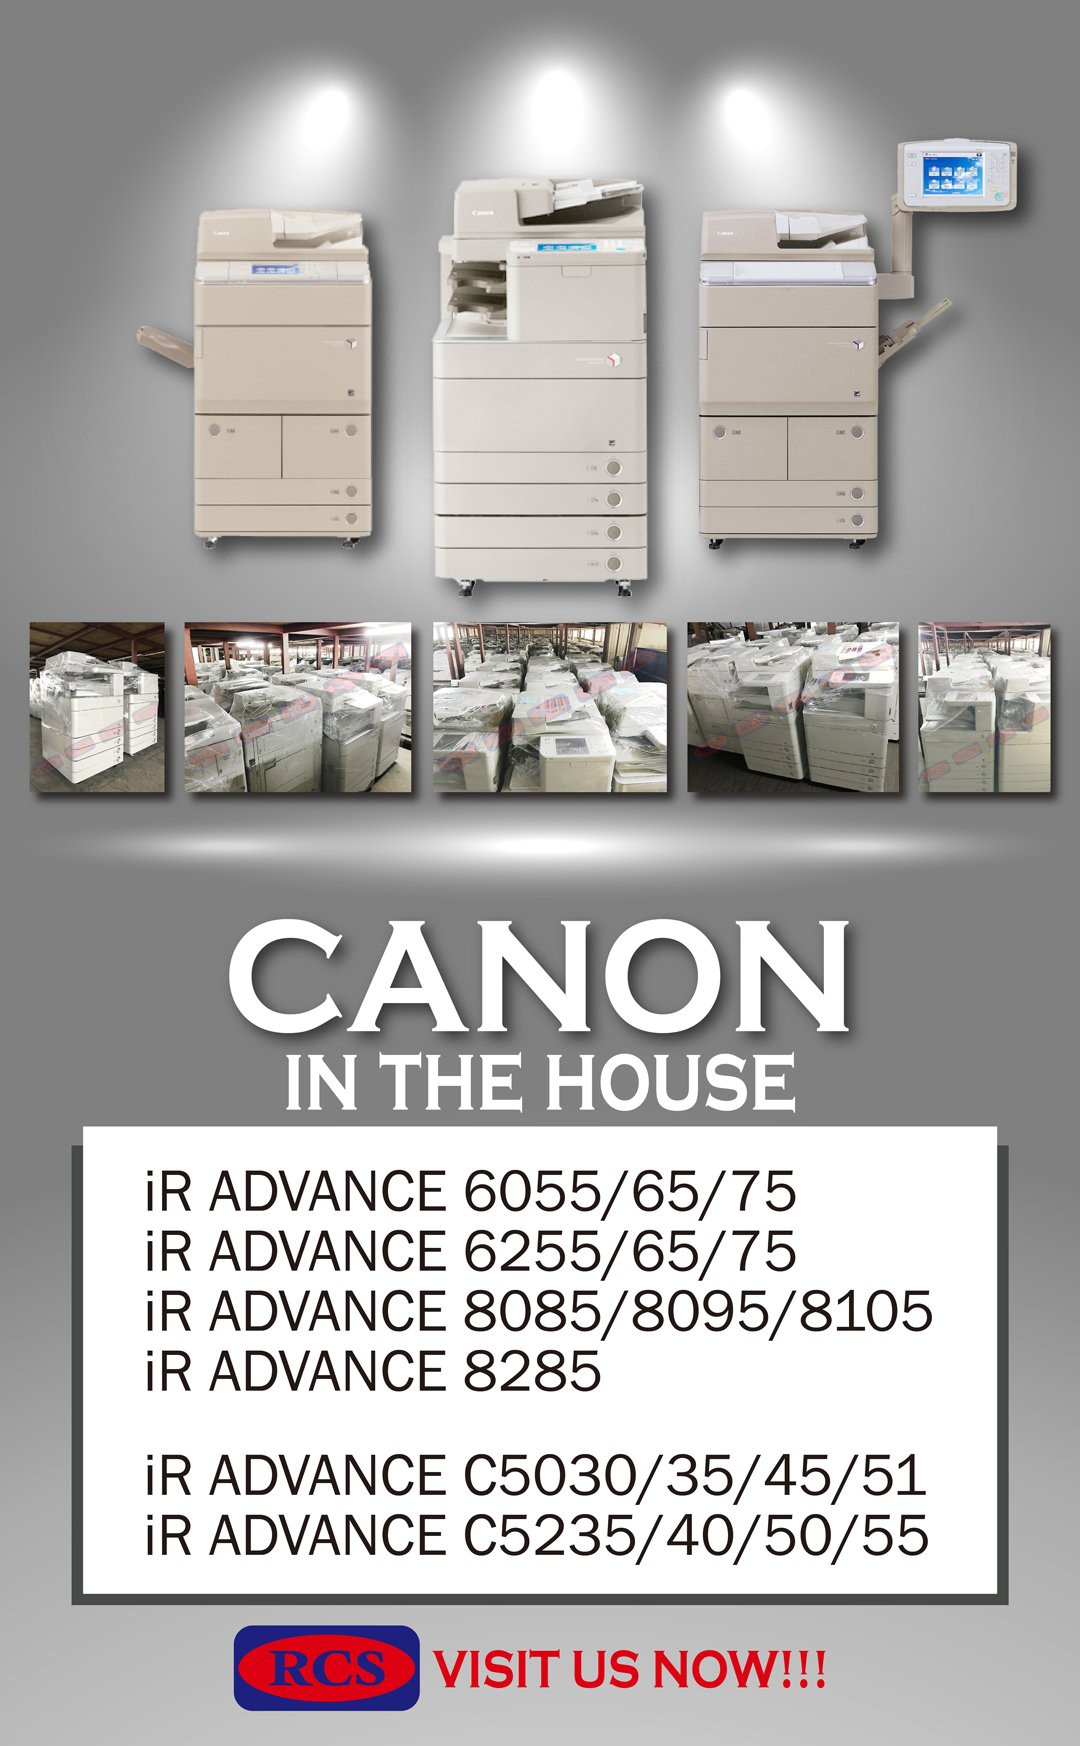 CANON IN THE HOUSE!! FUJI XEROX/RICOH/MINOLTA RECONDITIONED COPIER WHOLESALE